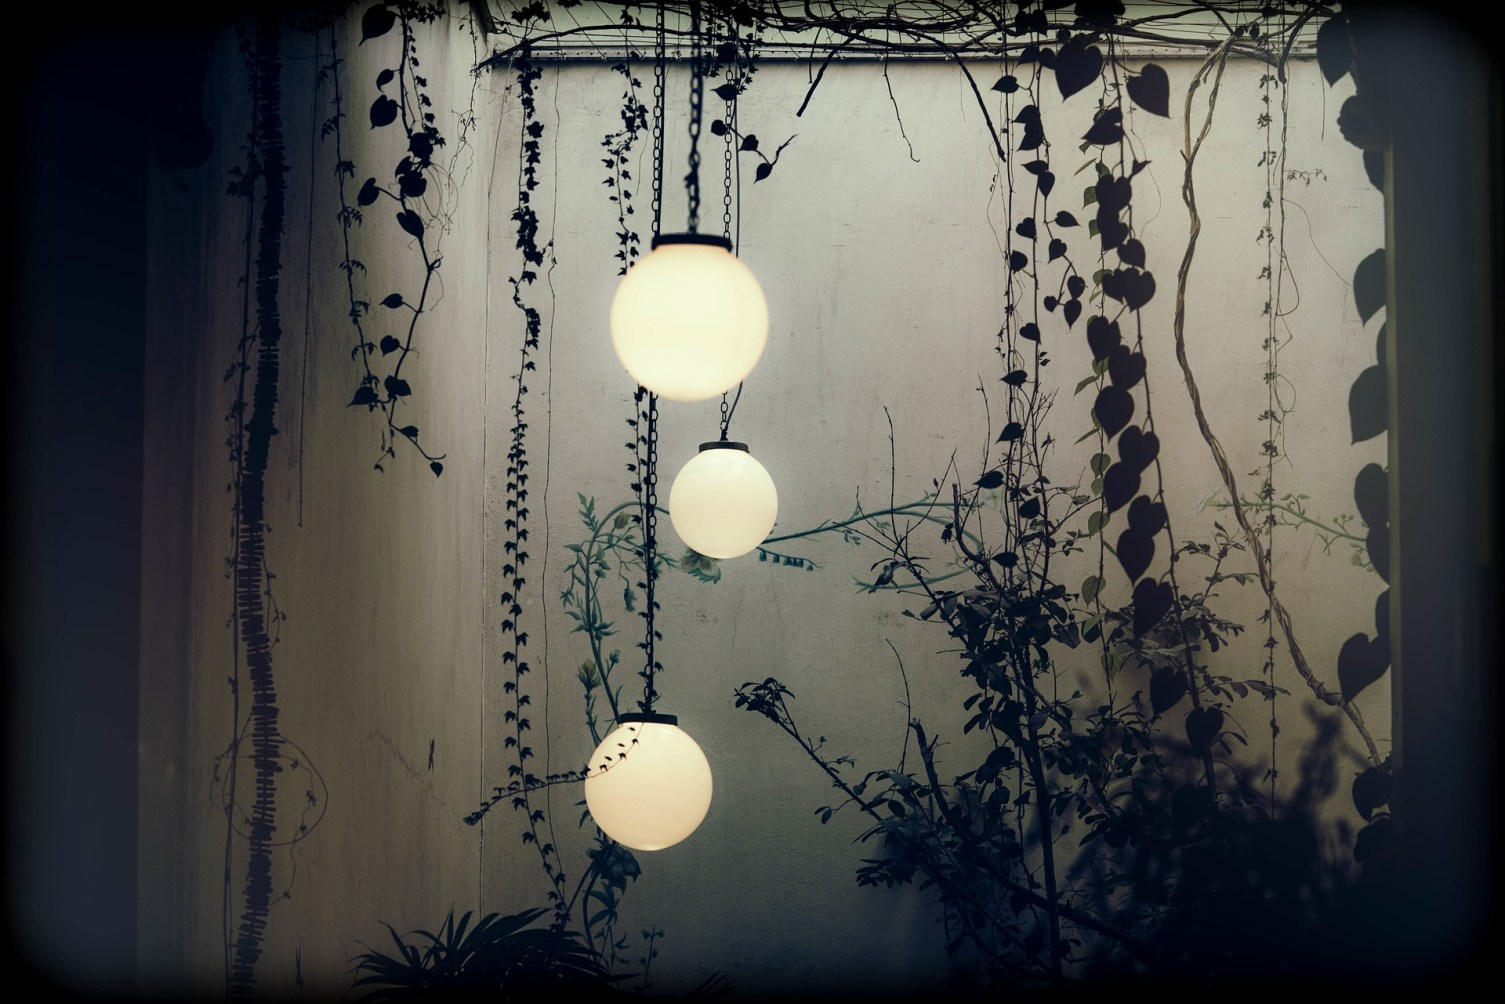 lamps-918495_1920